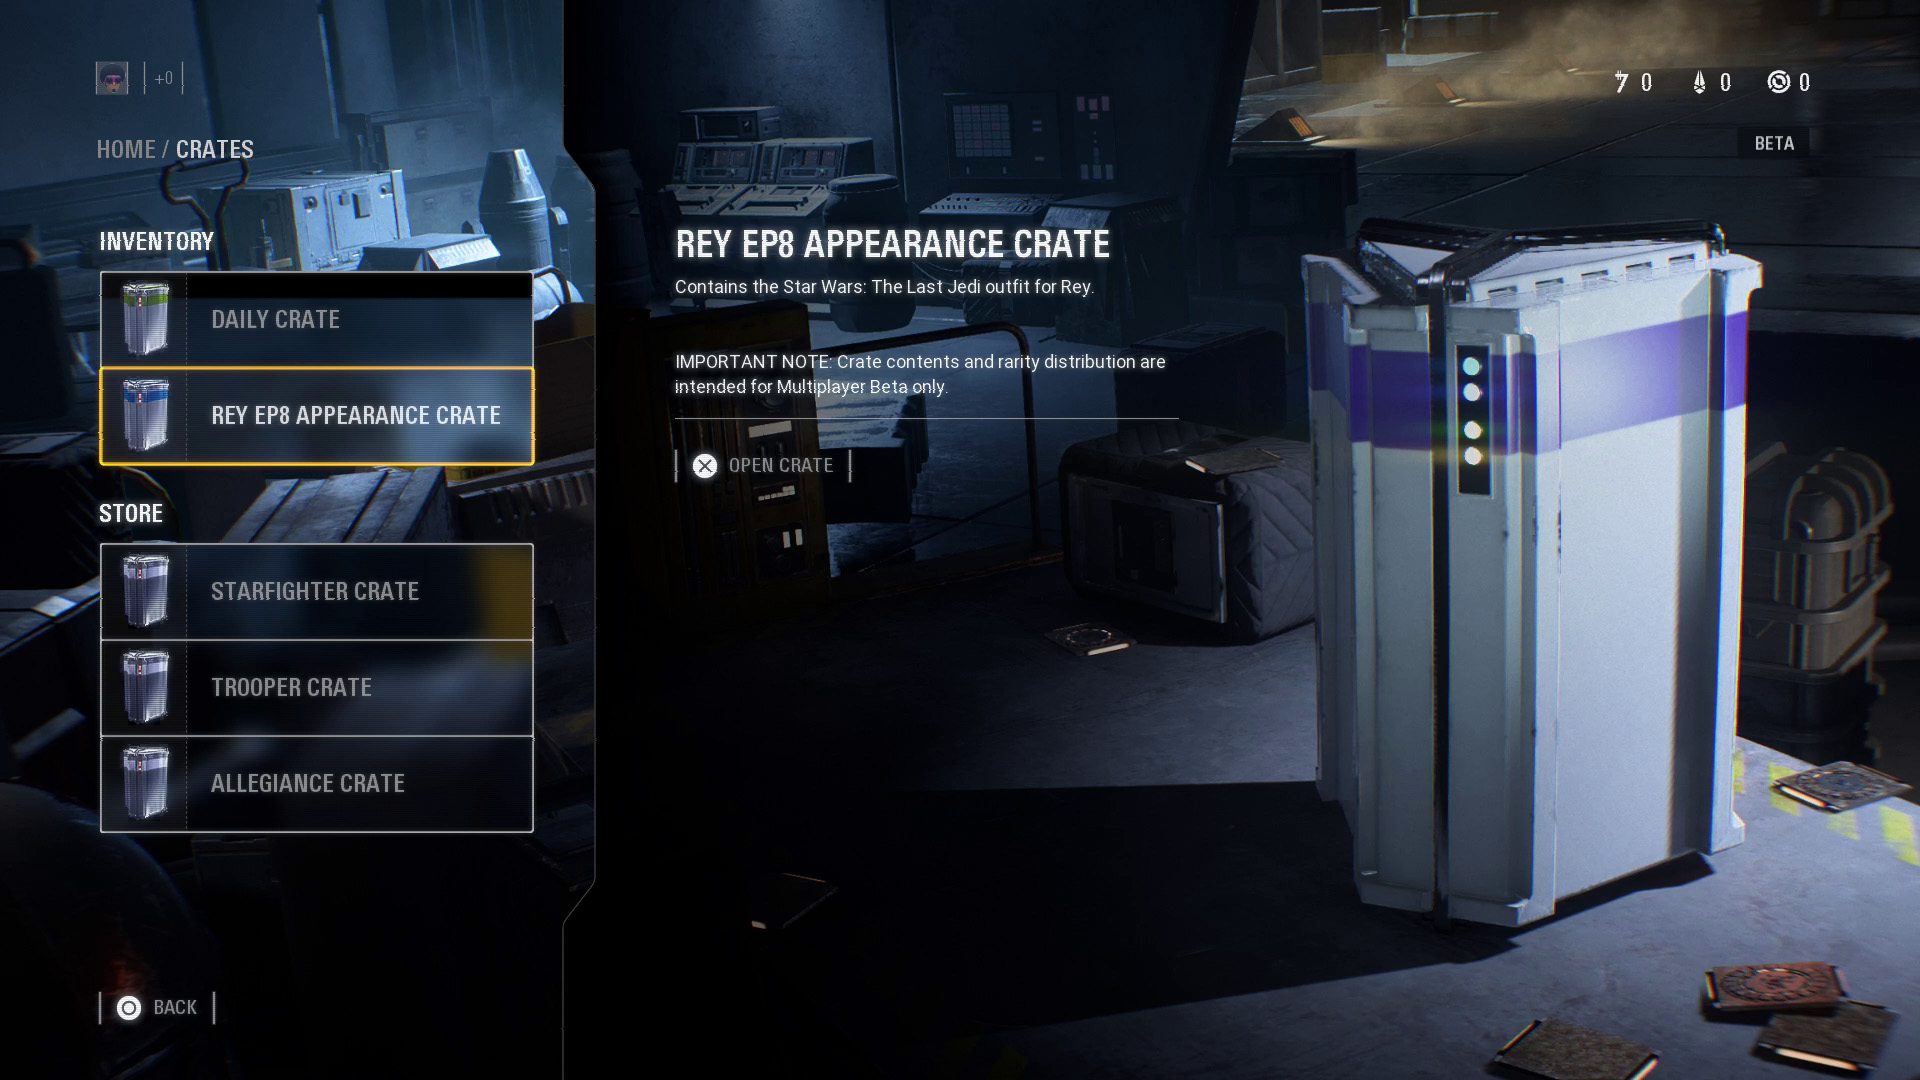 Star Wars Battlefront II open beta is now live across all platforms